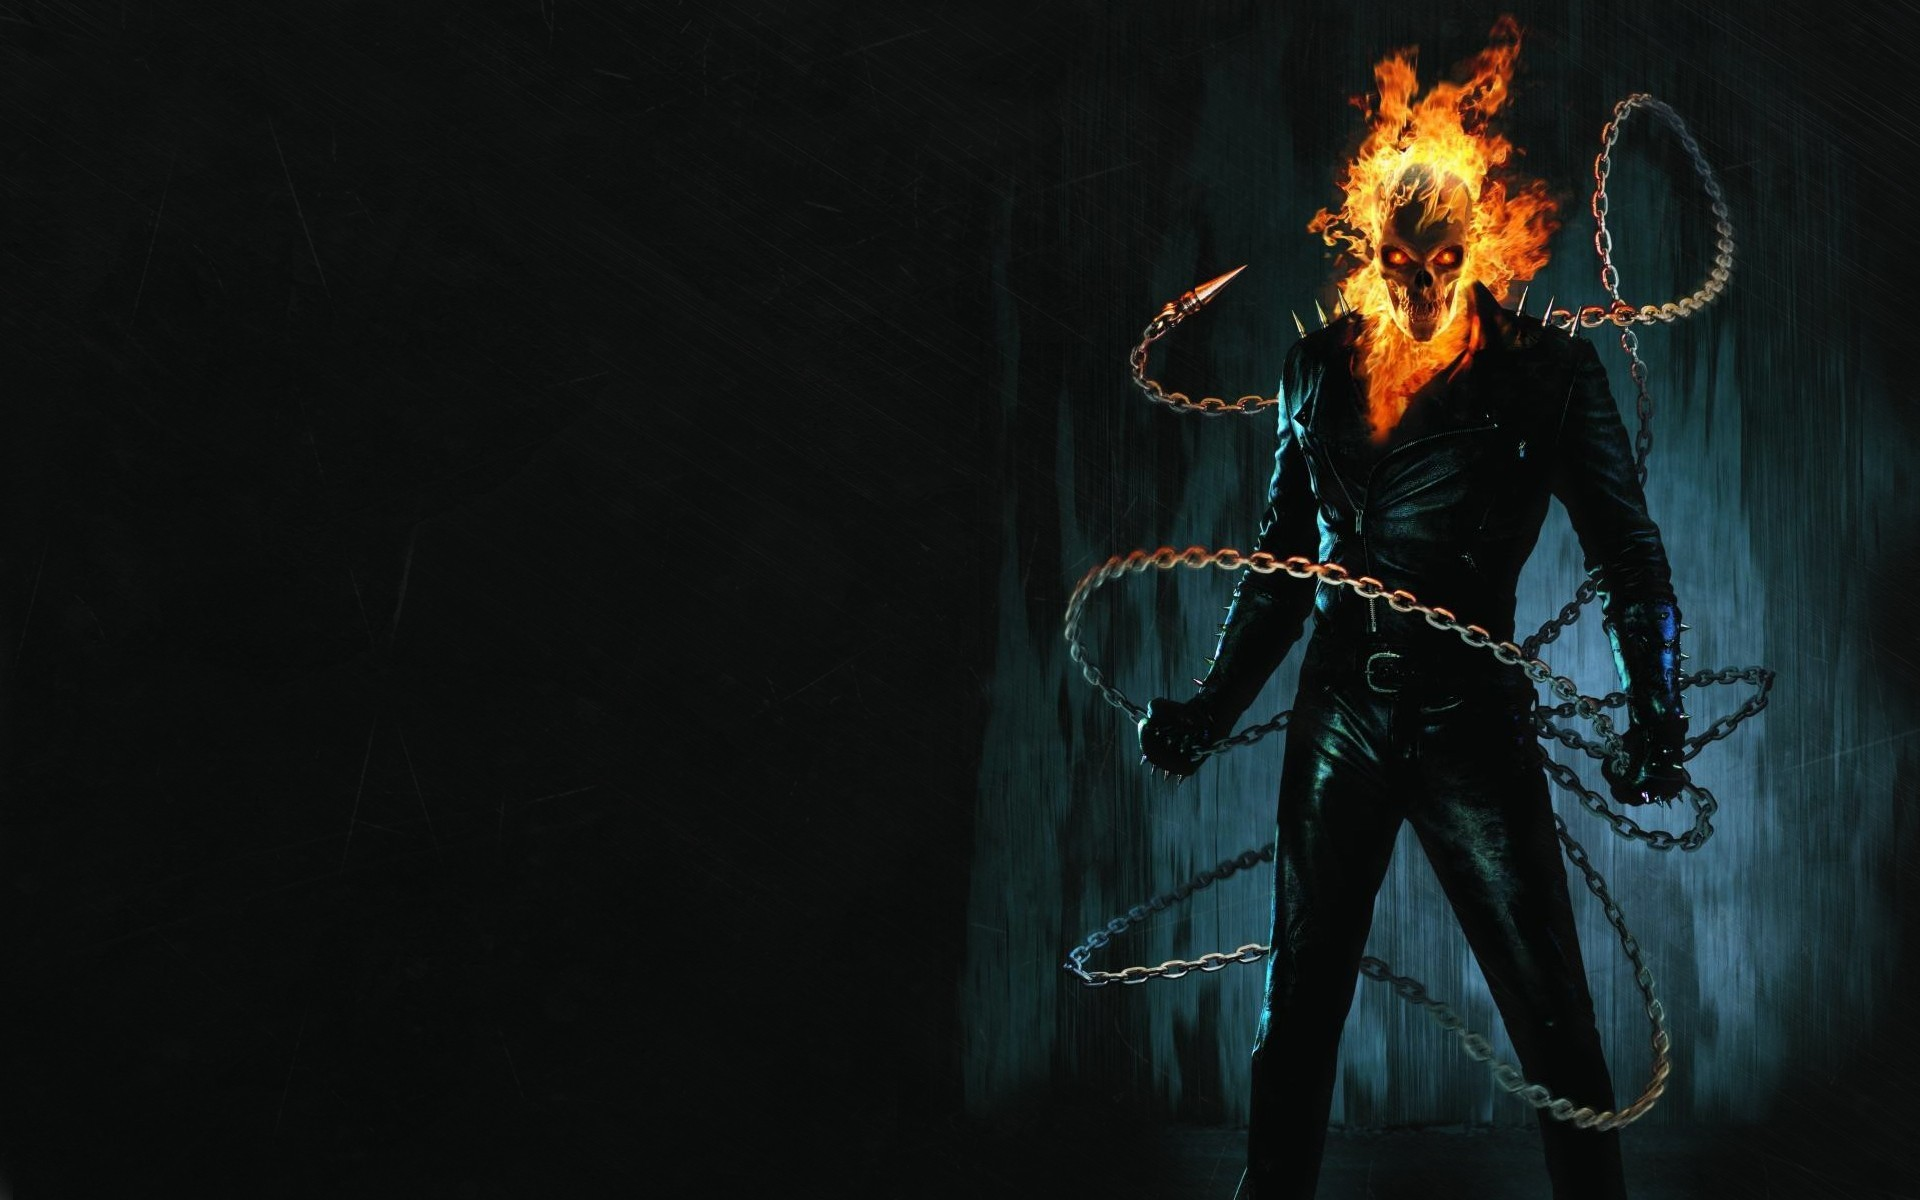 … ghost rider wallpapers wallpapers browse …